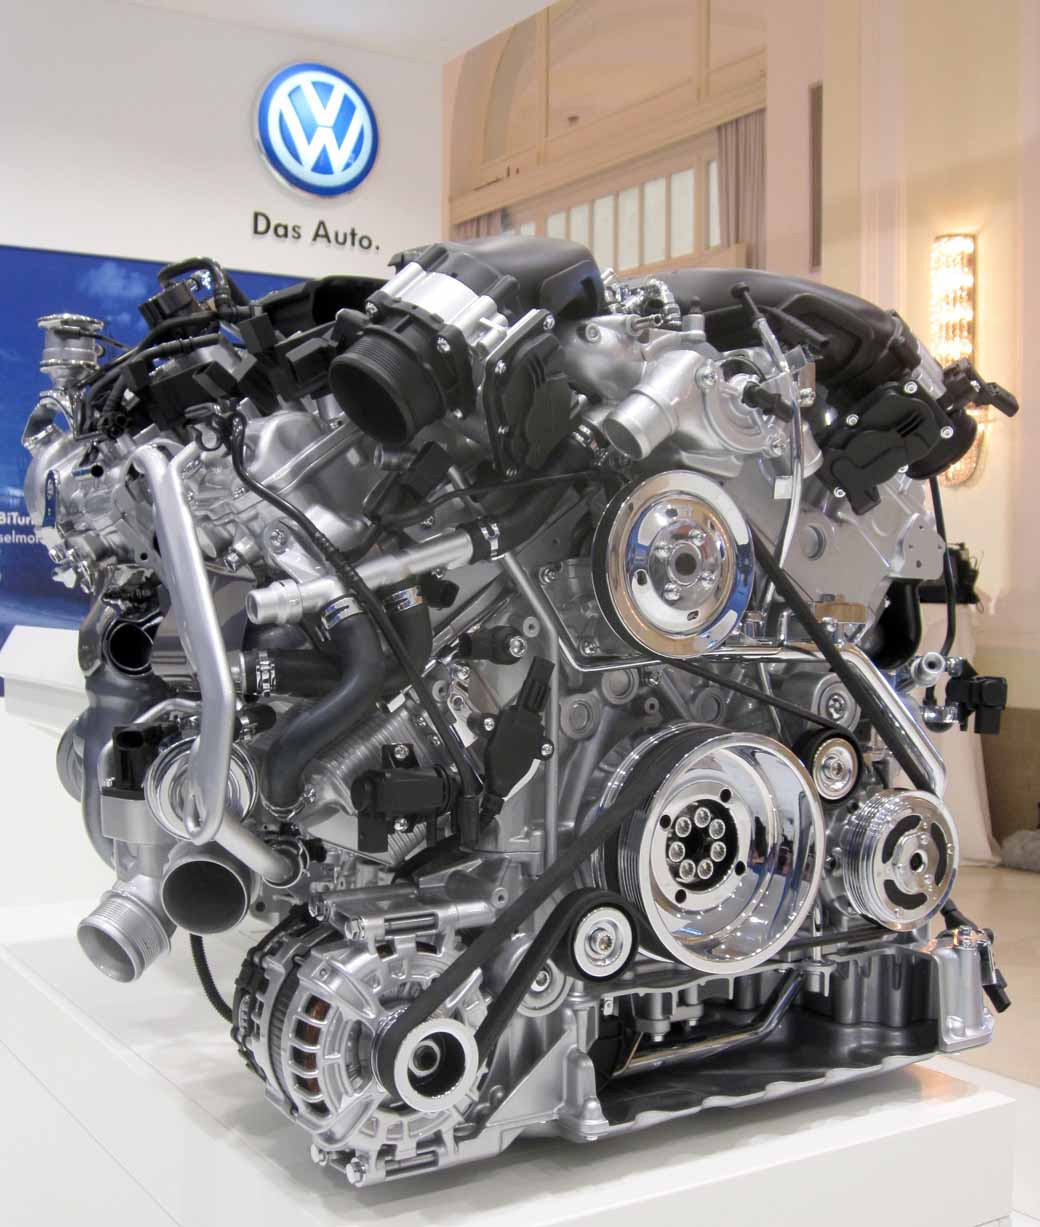 volkswagen-publish-w12-tsi-of-the-new-6-liter-engine-in-vienna20150510-7-min